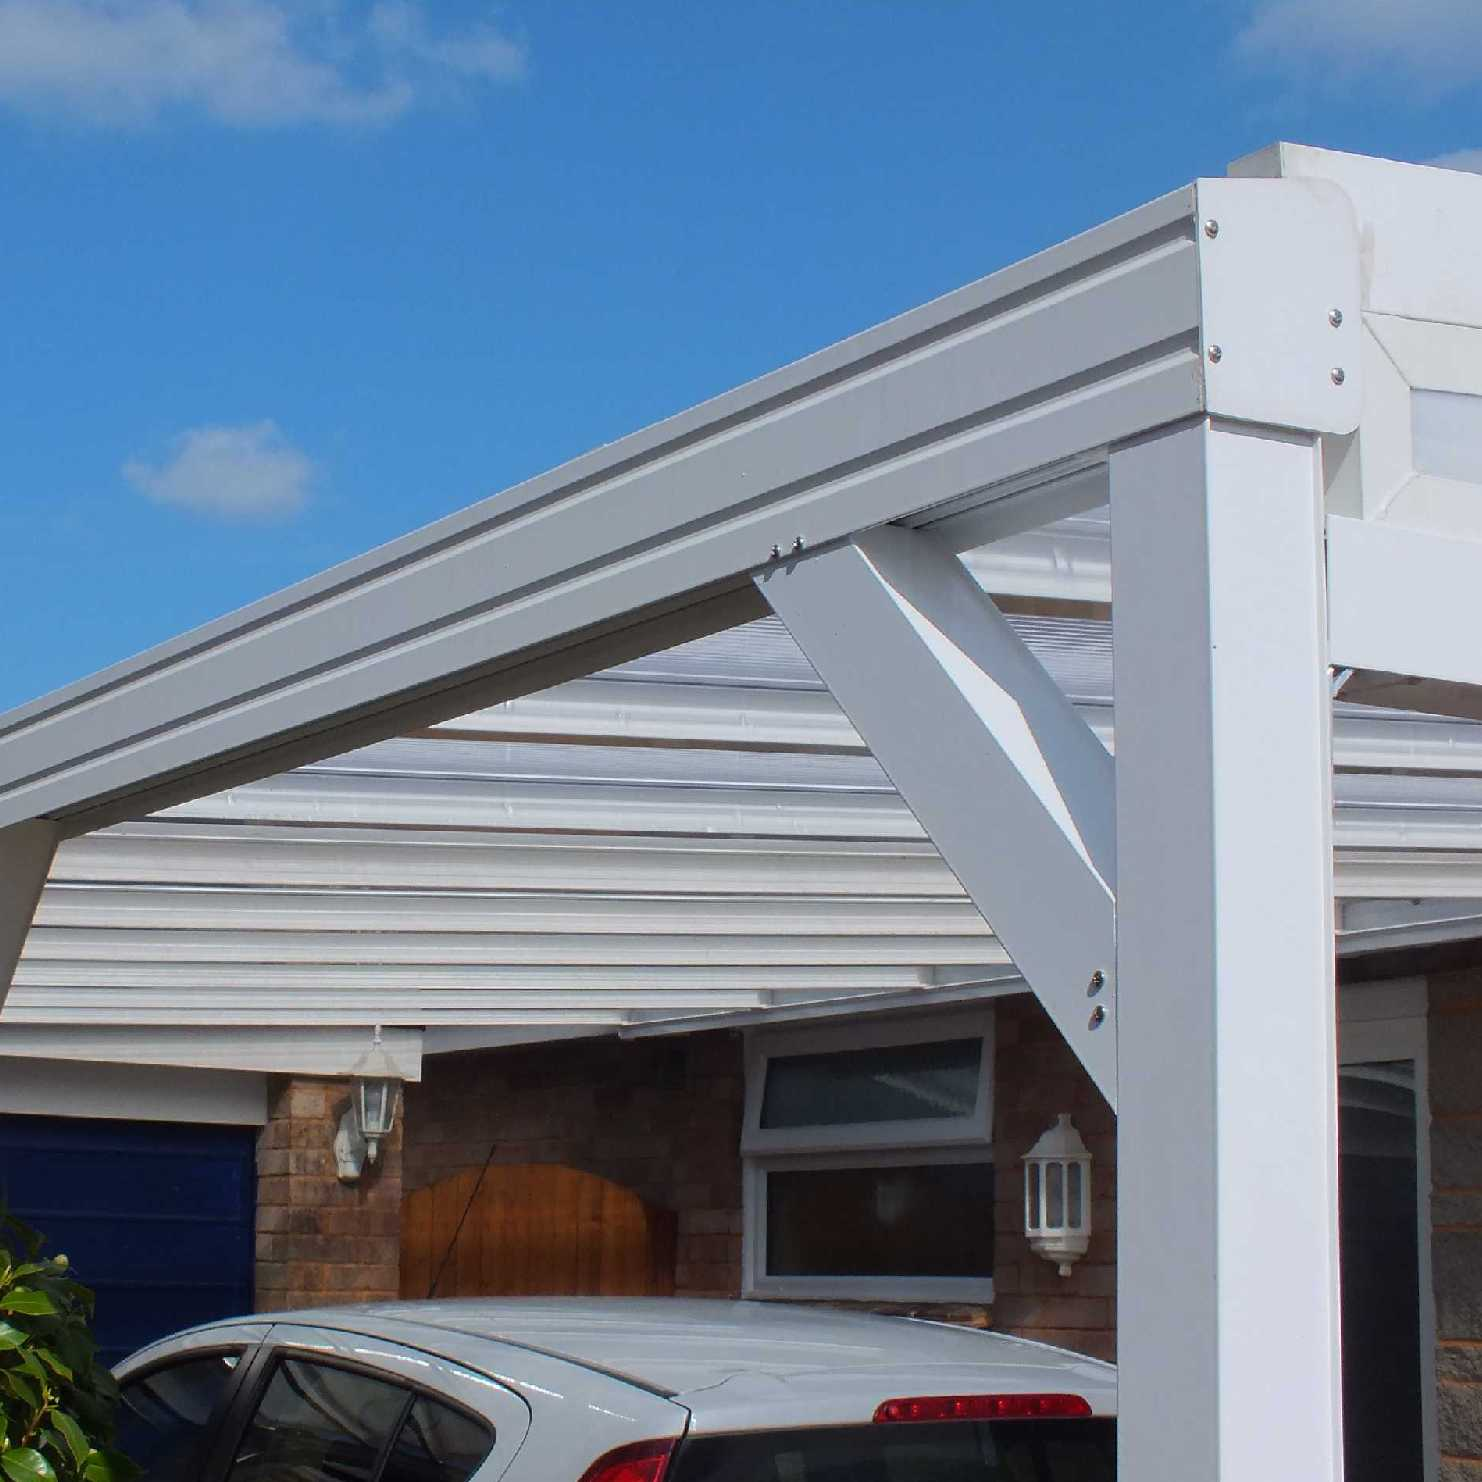 Great deals on Omega Smart White Lean-To Canopy with 16mm Polycarbonate Glazing - 9.5m (W) x 1.5m (P), (5) Supporting Posts